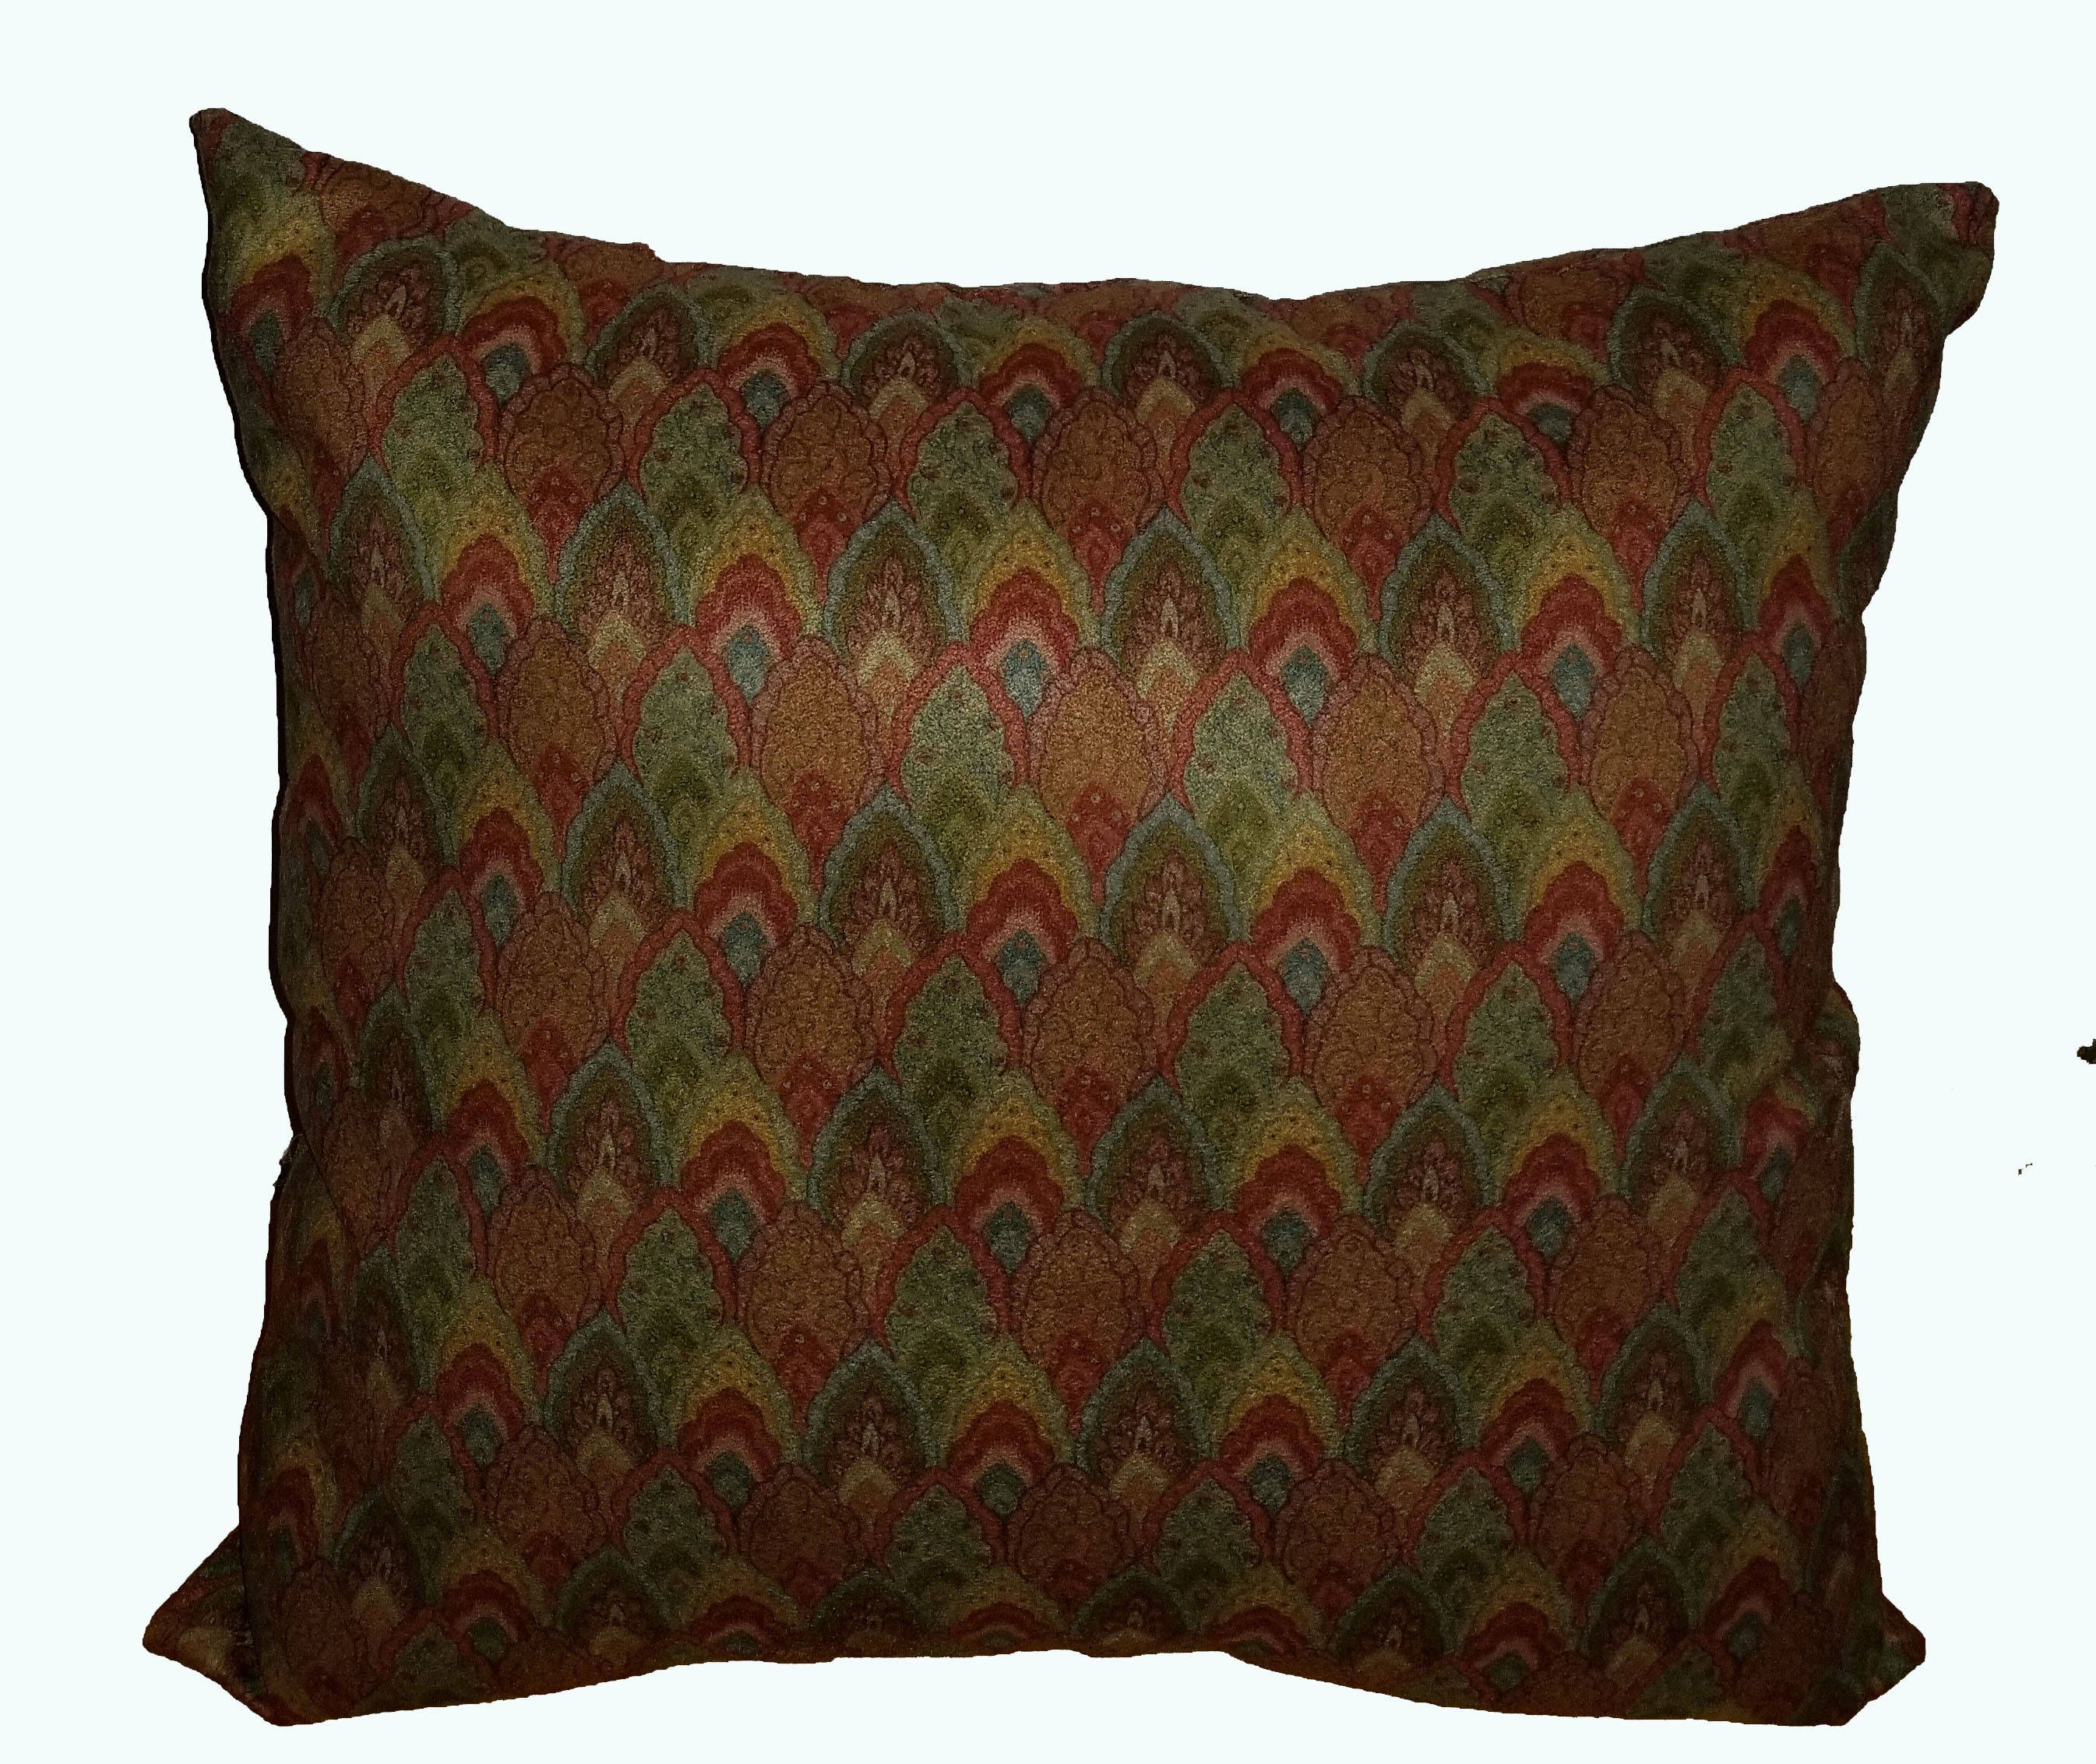 down coupon com double pillows giveaway review pacific pillow coast ends bedding code everything